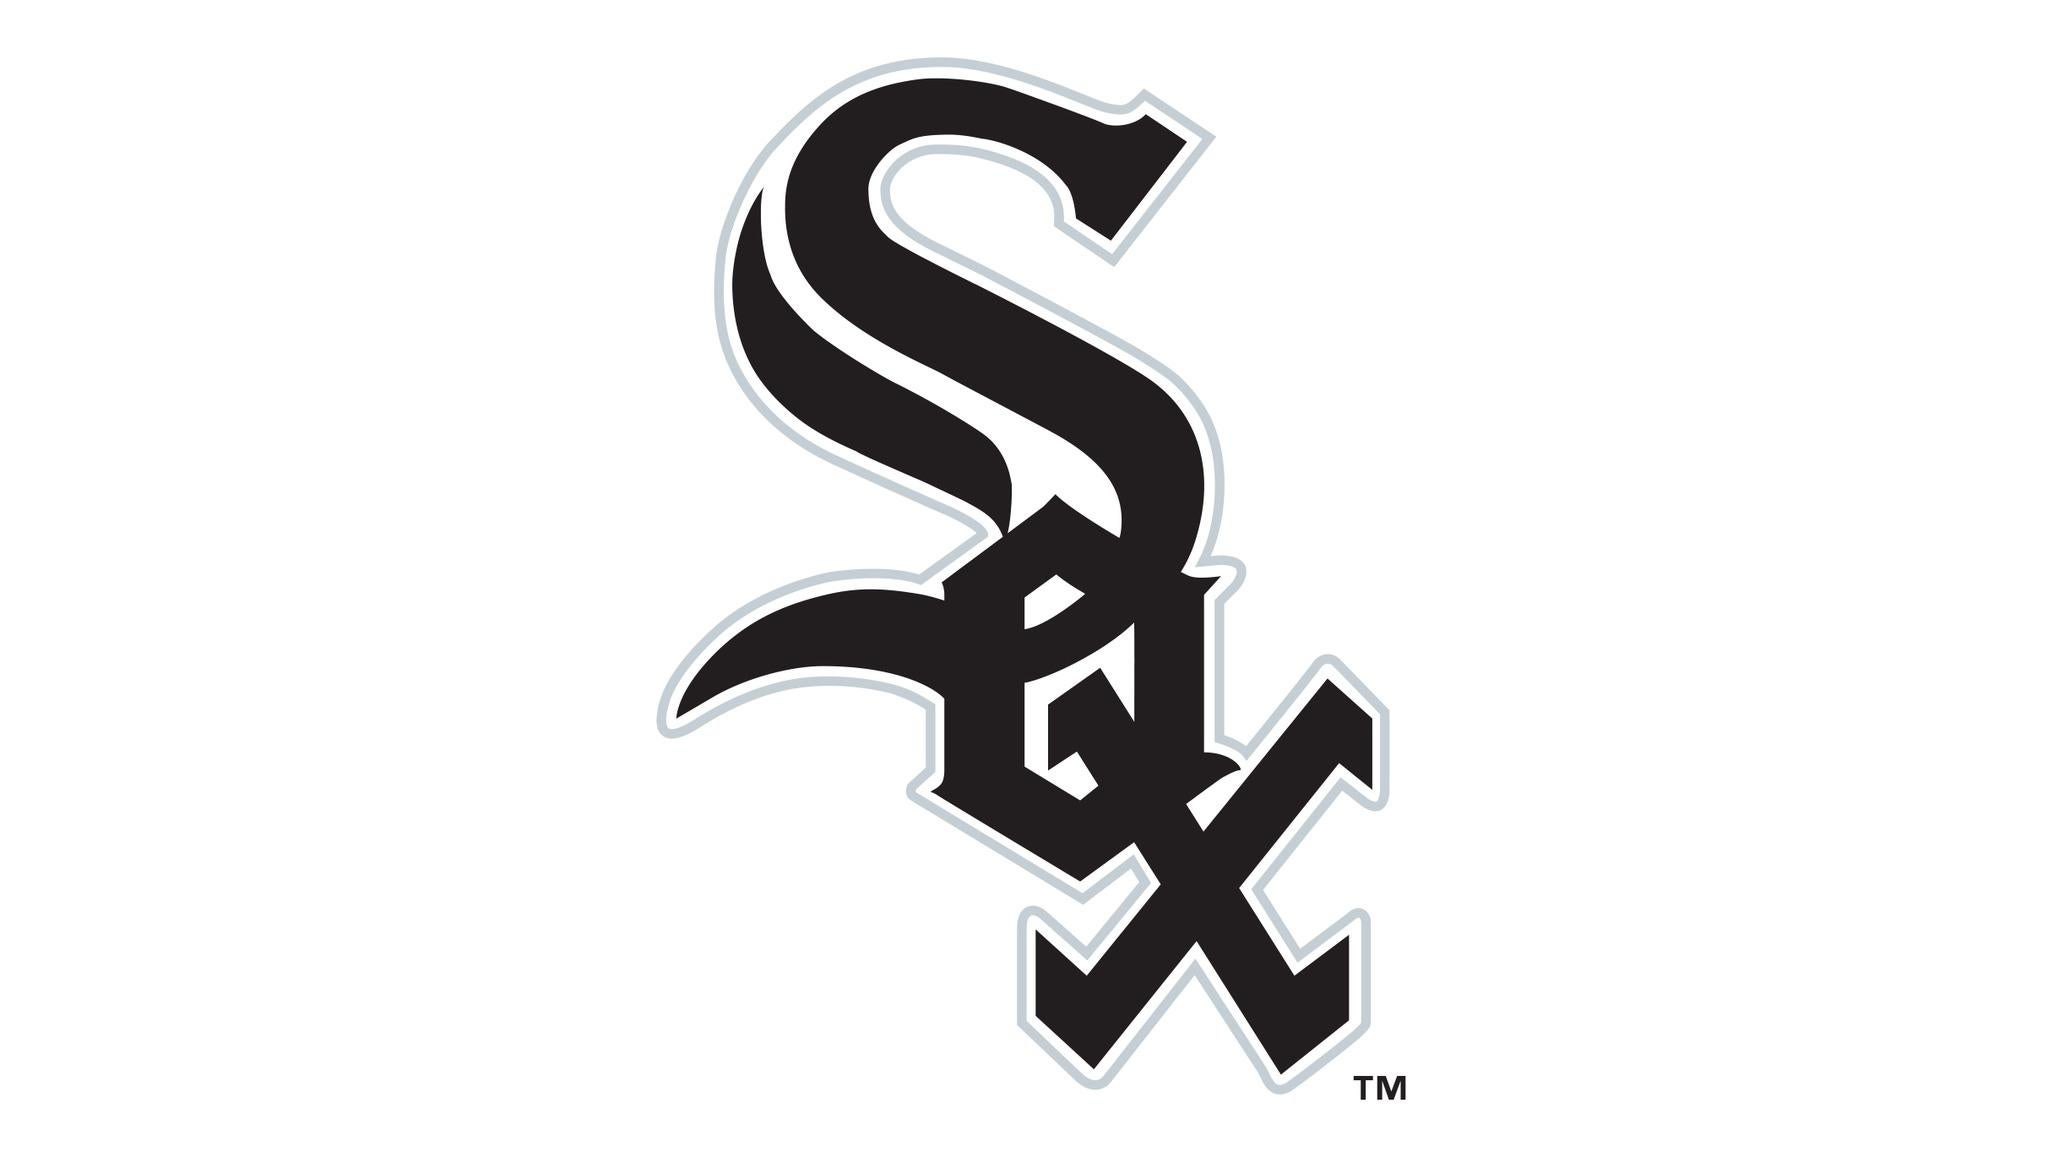 Chicago White Sox v Tampa Bay Rays at U.S. Cellular Field